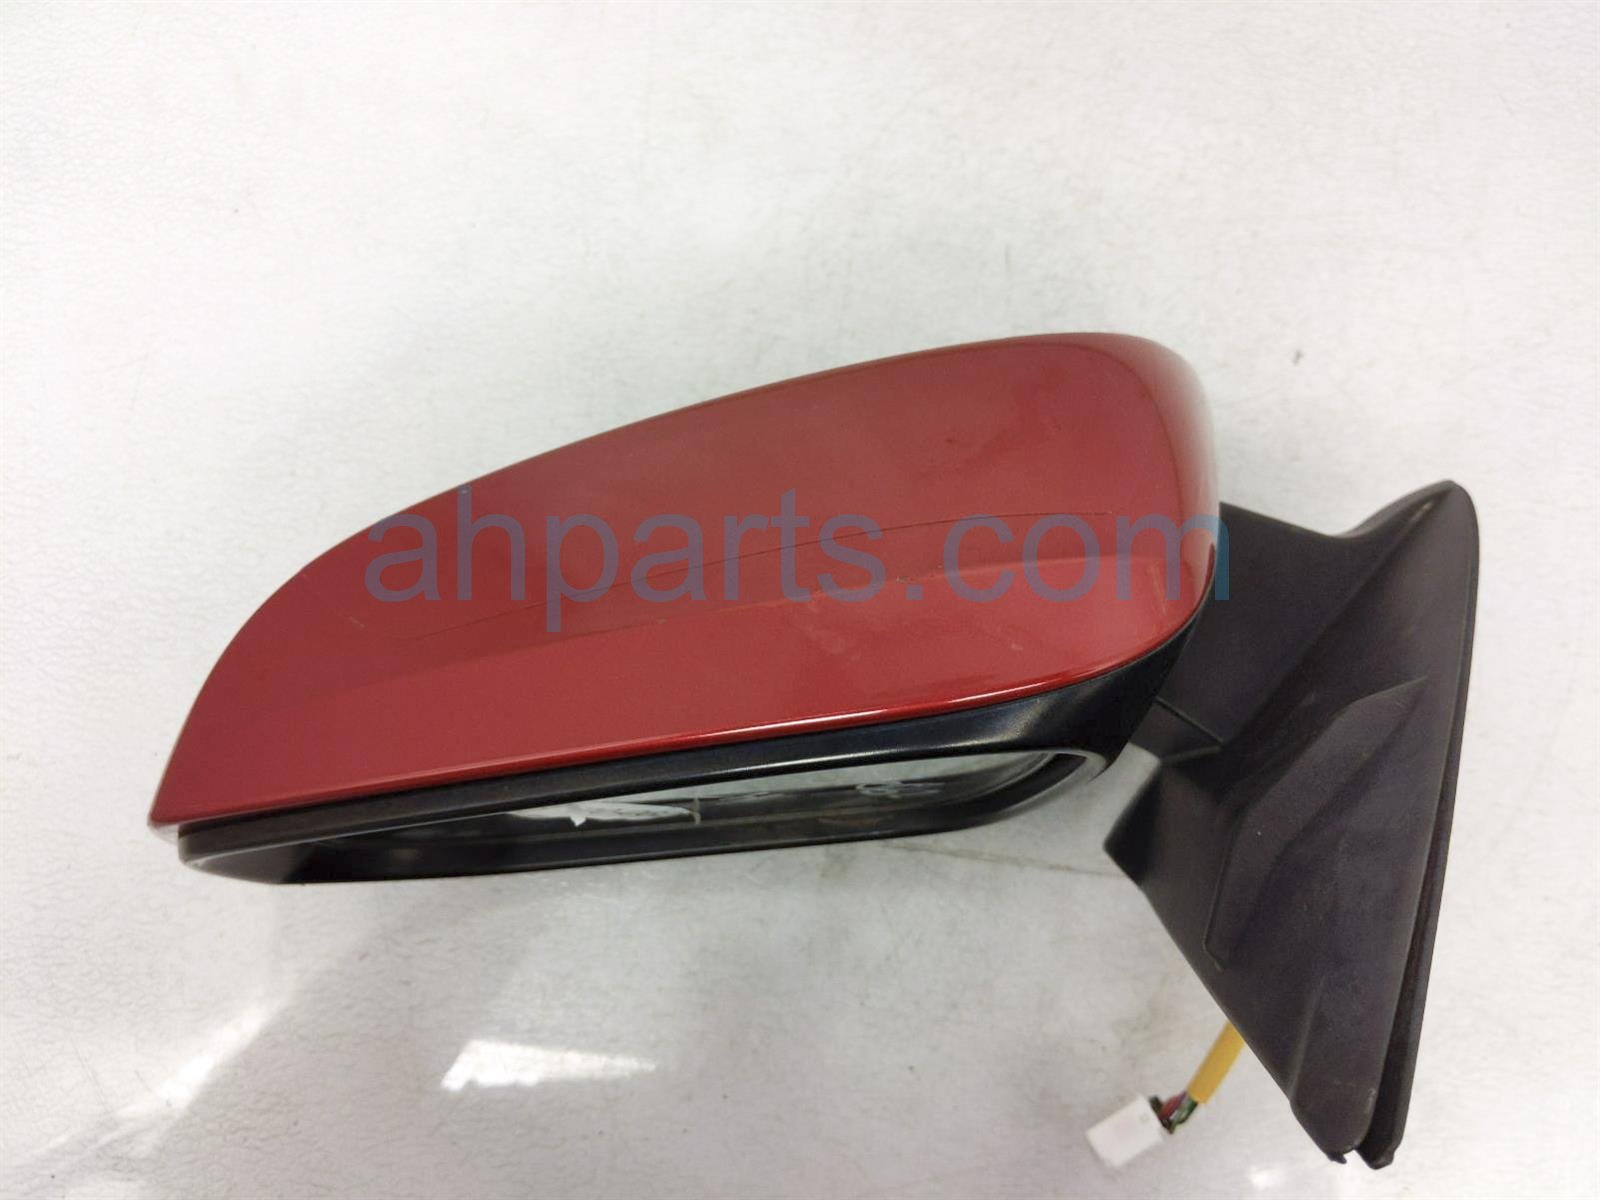 2017 Toyota Tacoma Rear Driver Side View Mirror   Red 87940 04250 Replacement